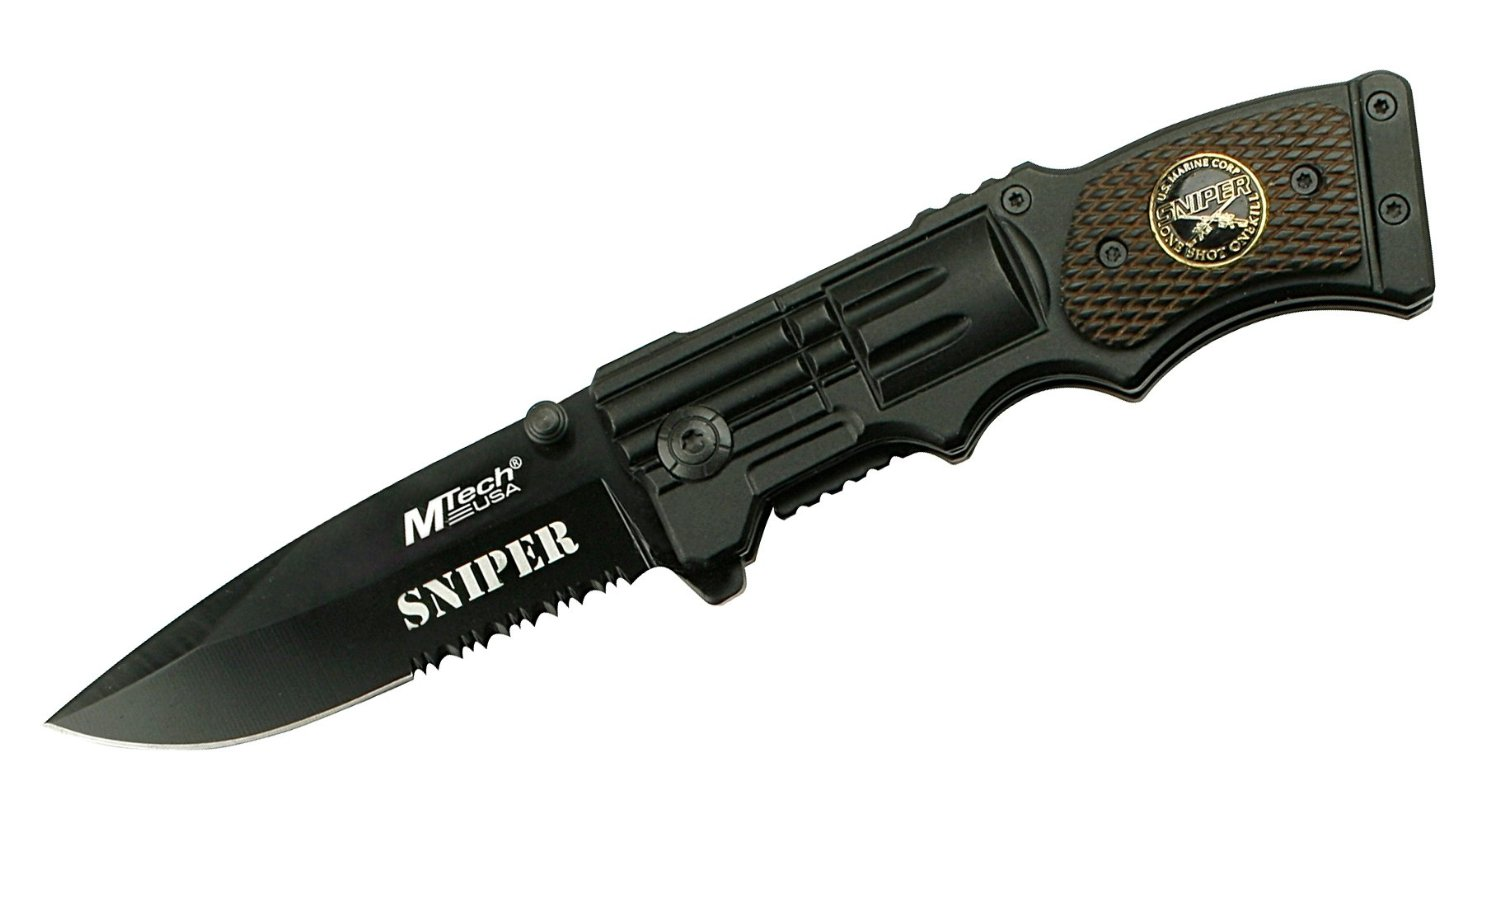 Pistol Folding Knife  Pistol